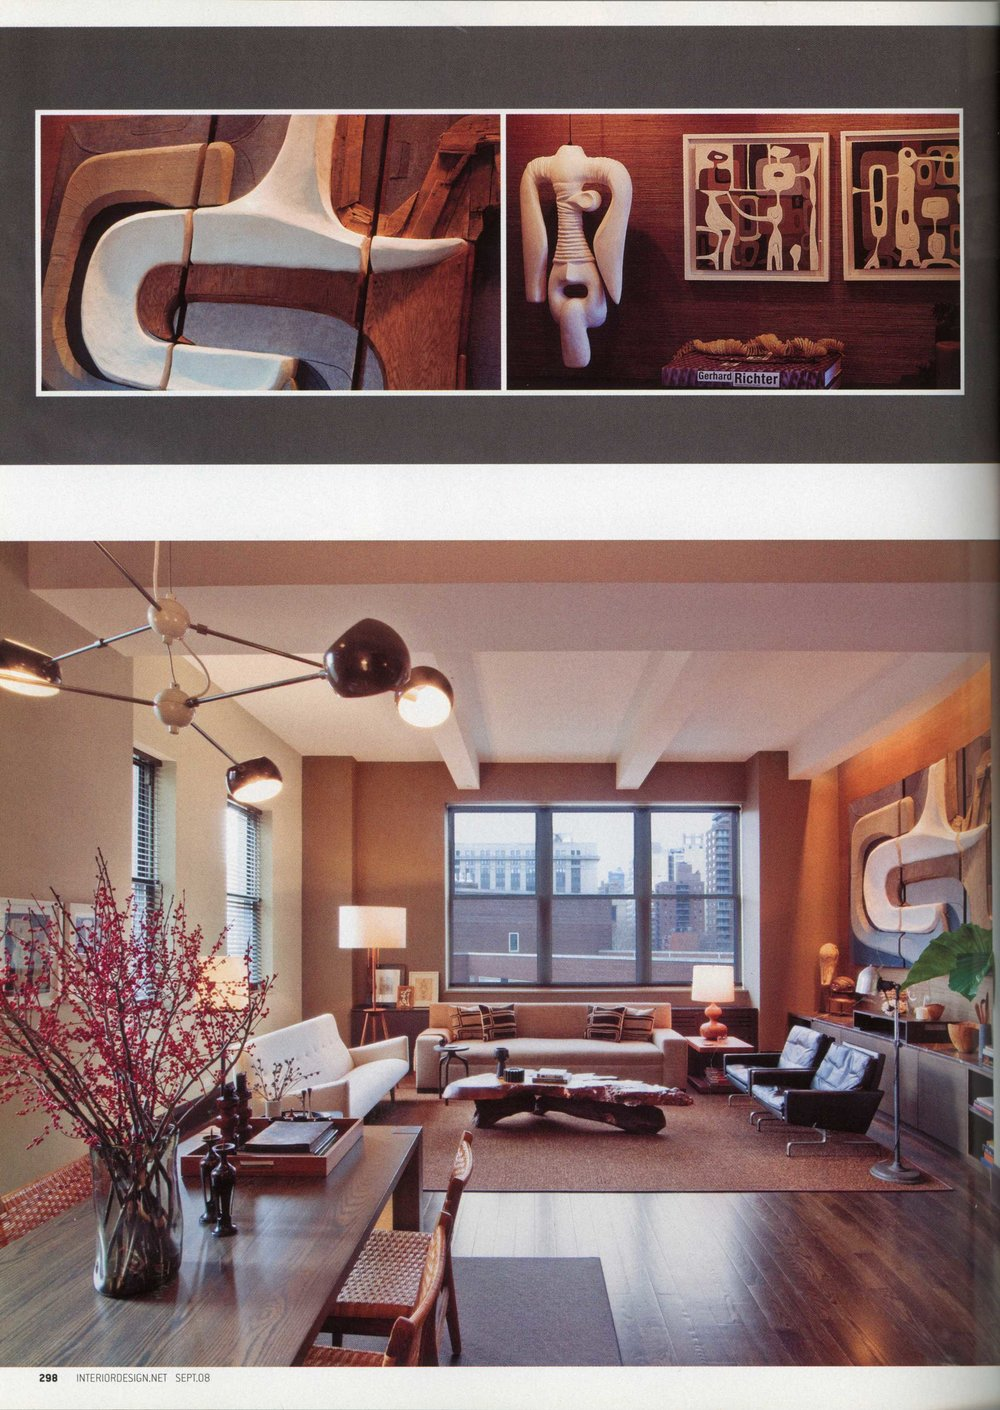 Interior Design_Sept 08_SS Apt_Full Article_Page_4.jpg